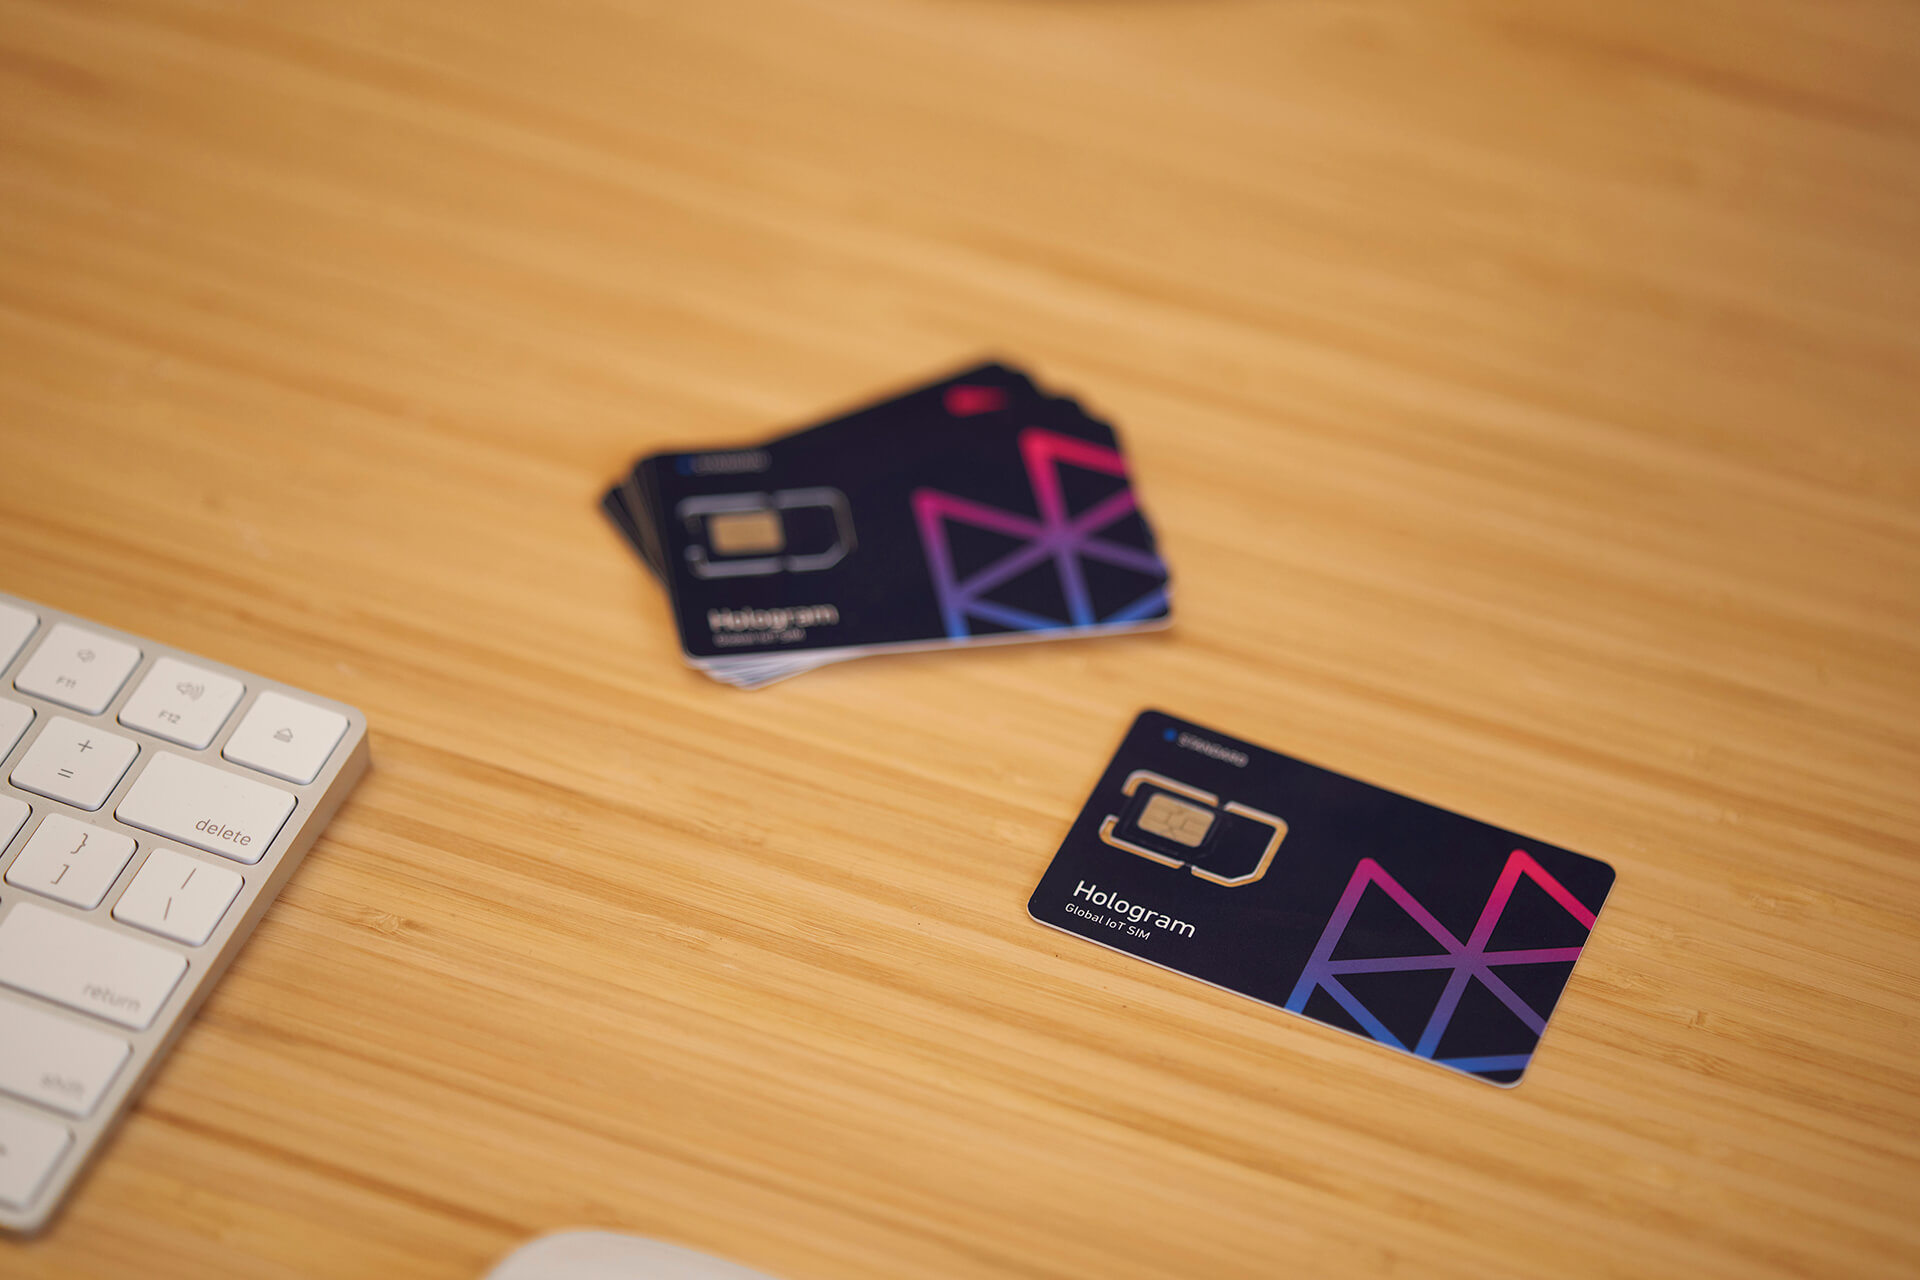 Hologram SIM cards on a wooden table next to a keyboard.